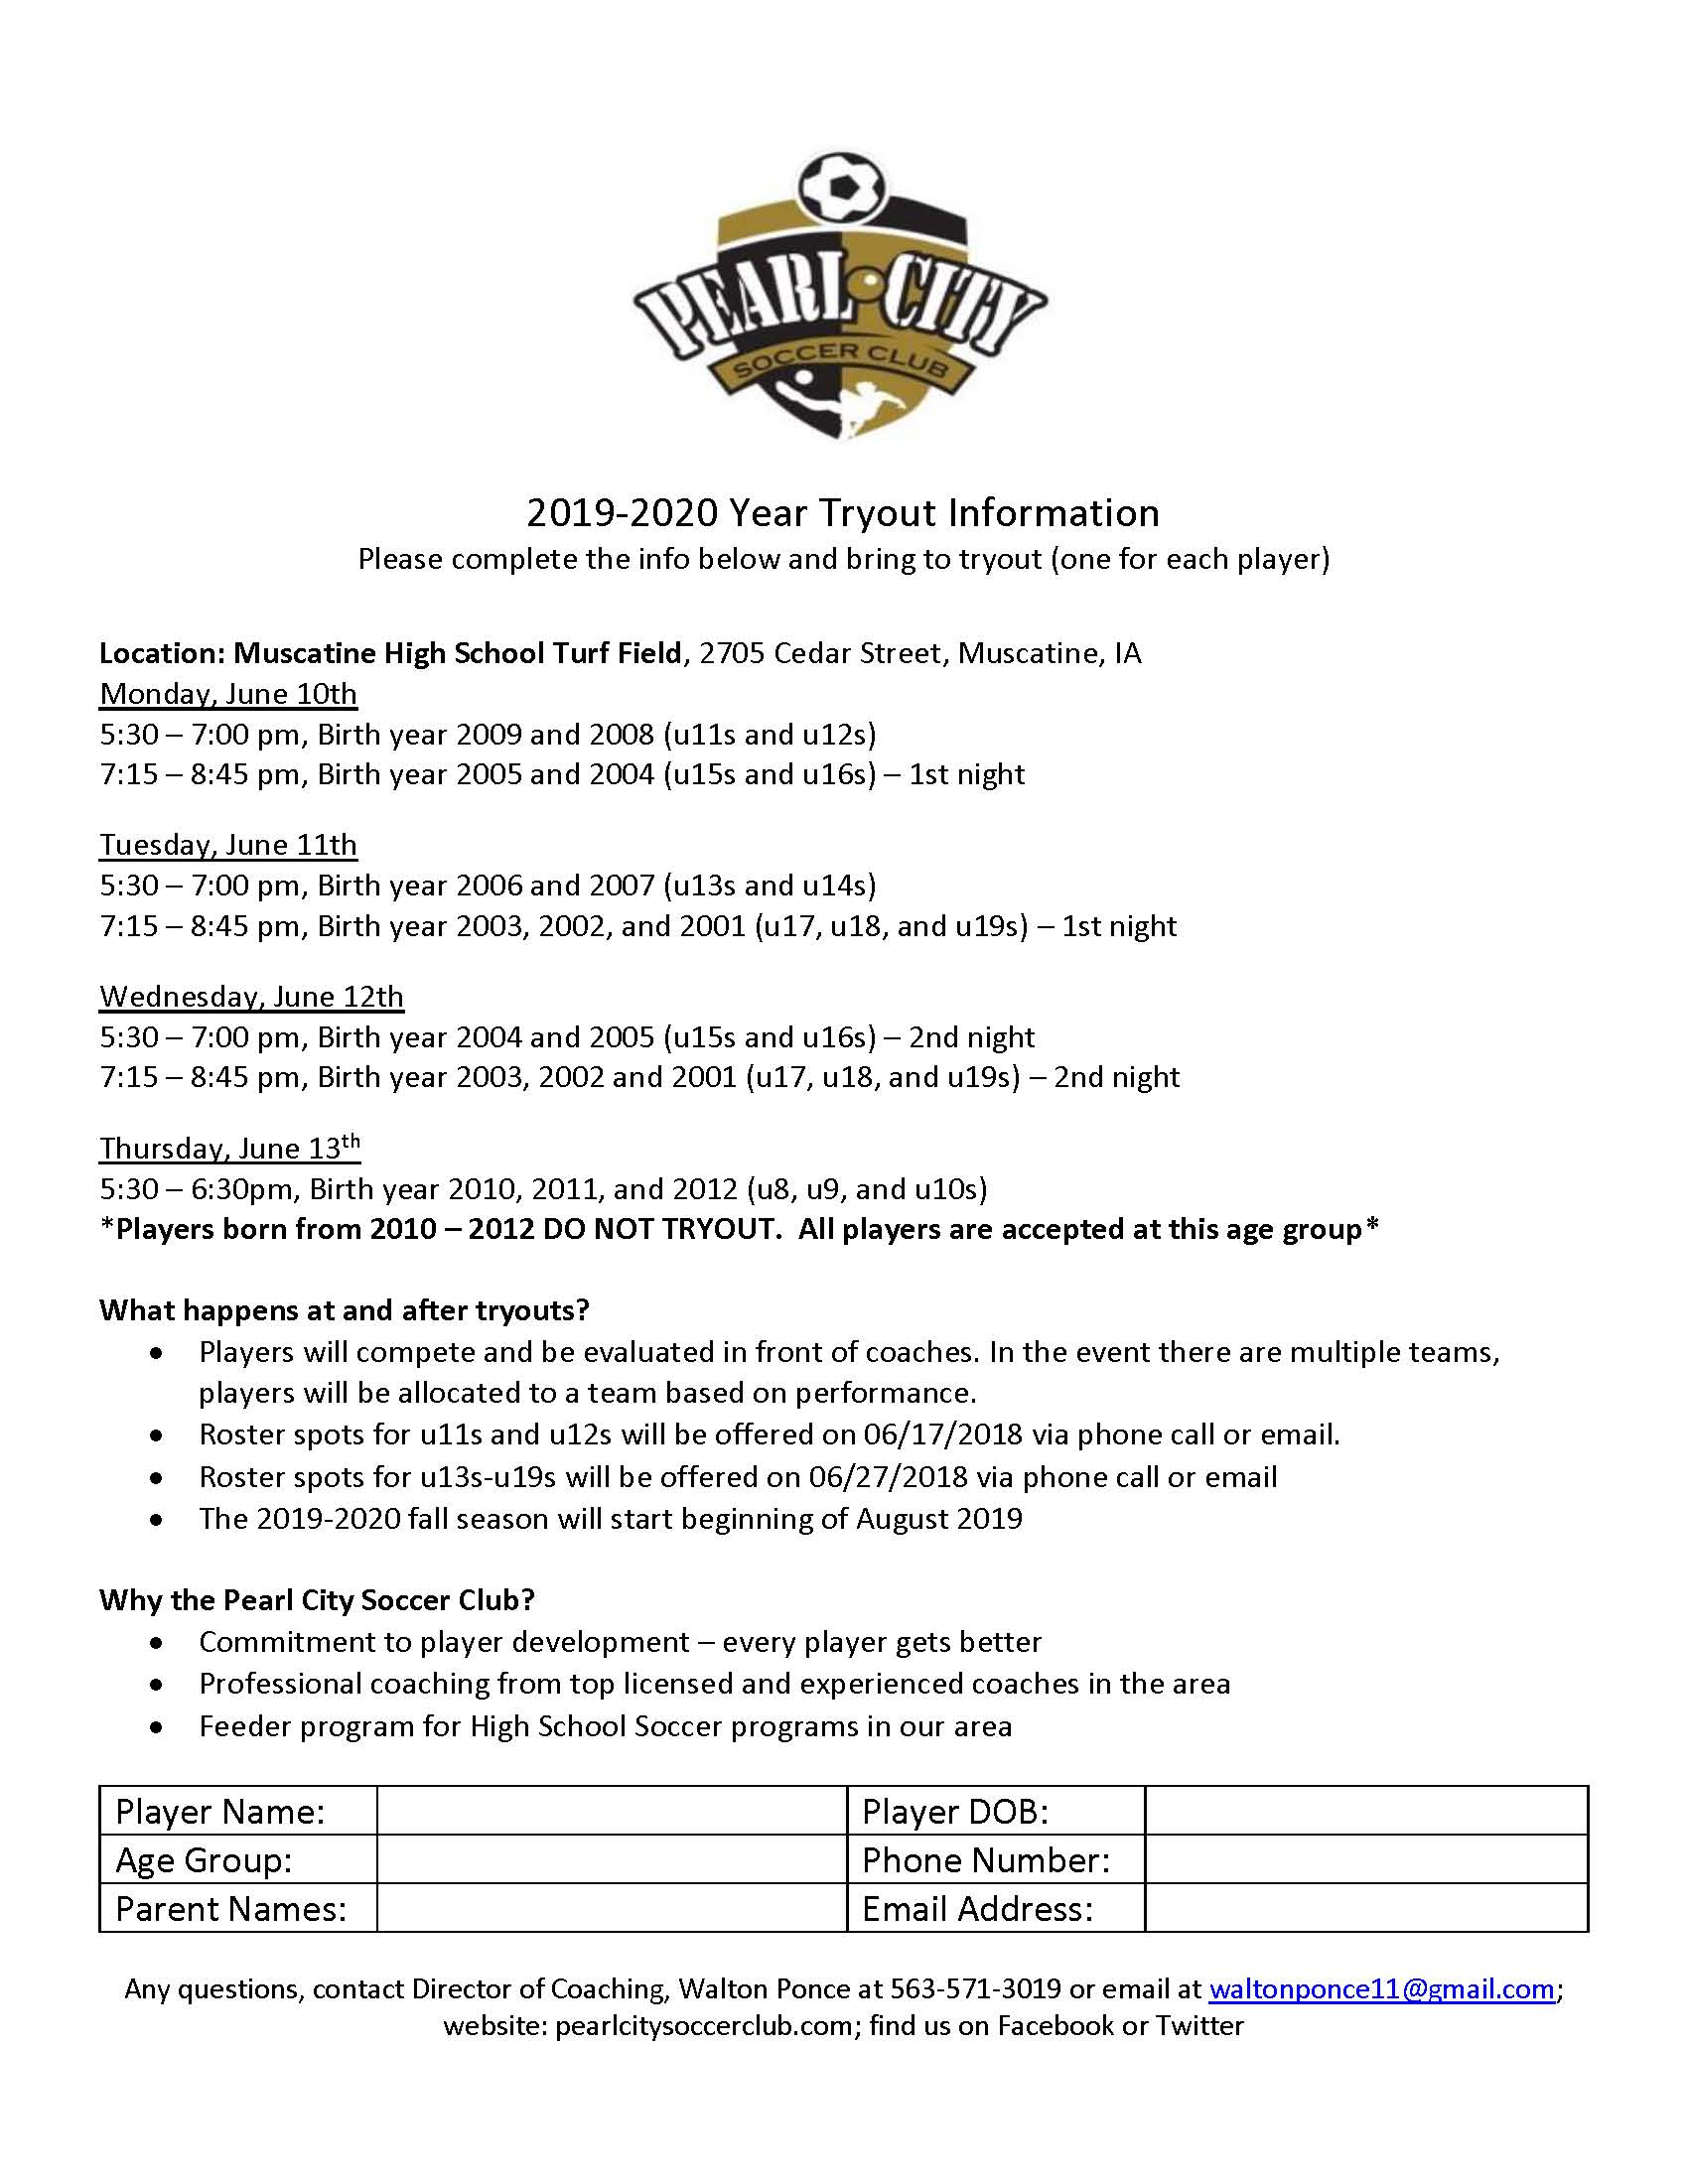 Pearl City Soccer Club Tryouts - Muscatine Community School